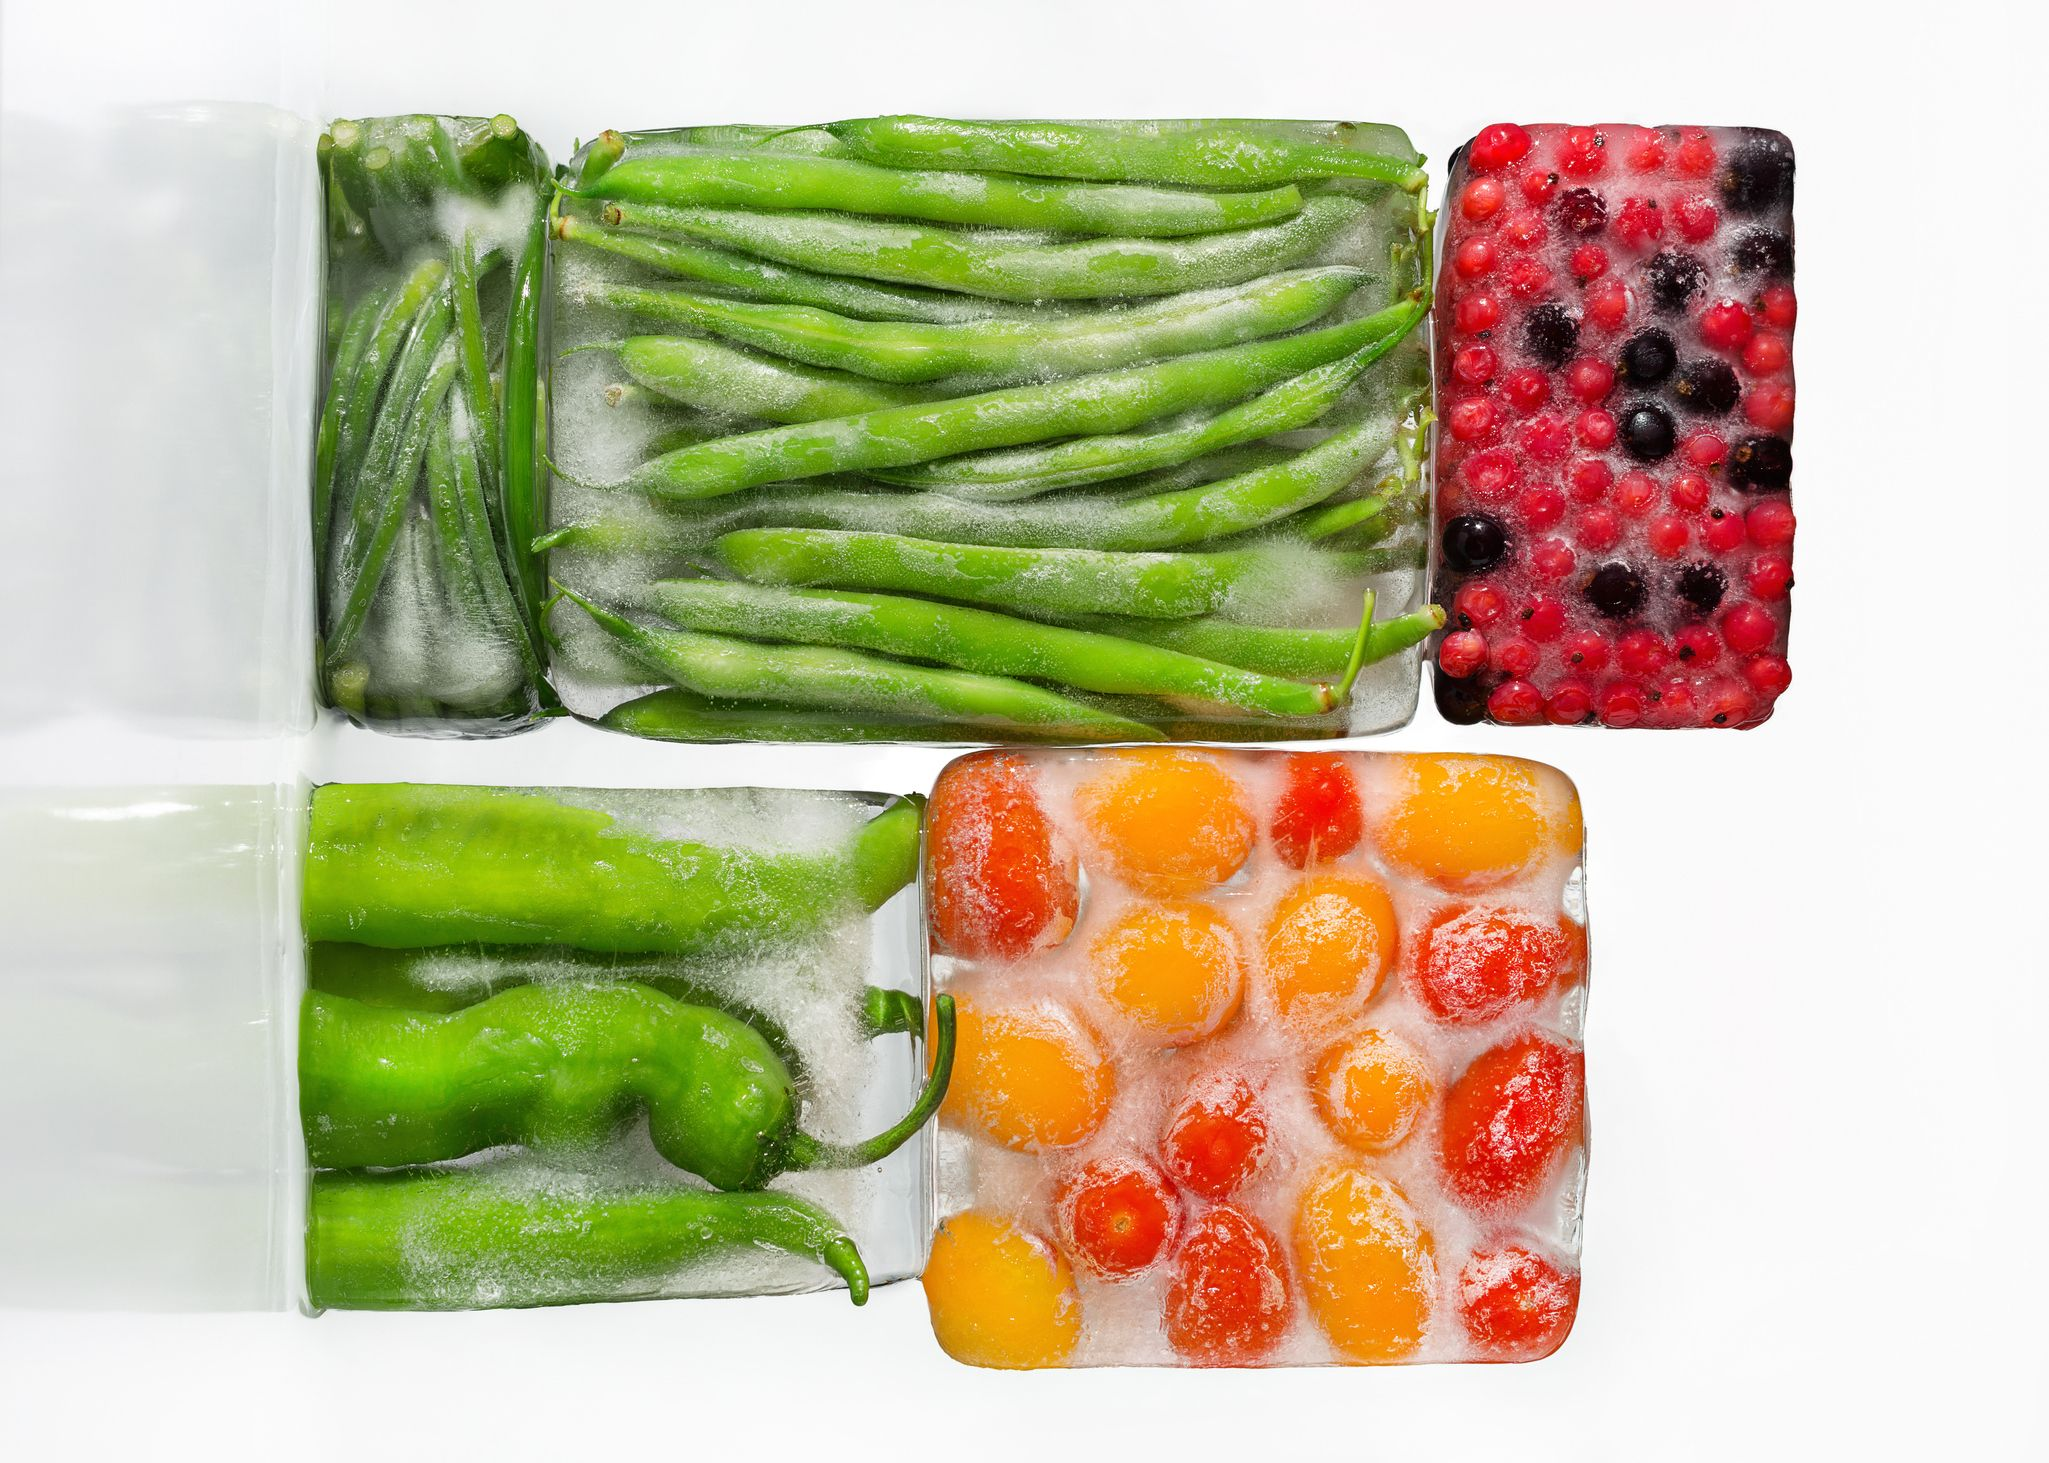 The Smart Way to Freeze Fruits and Vegetables